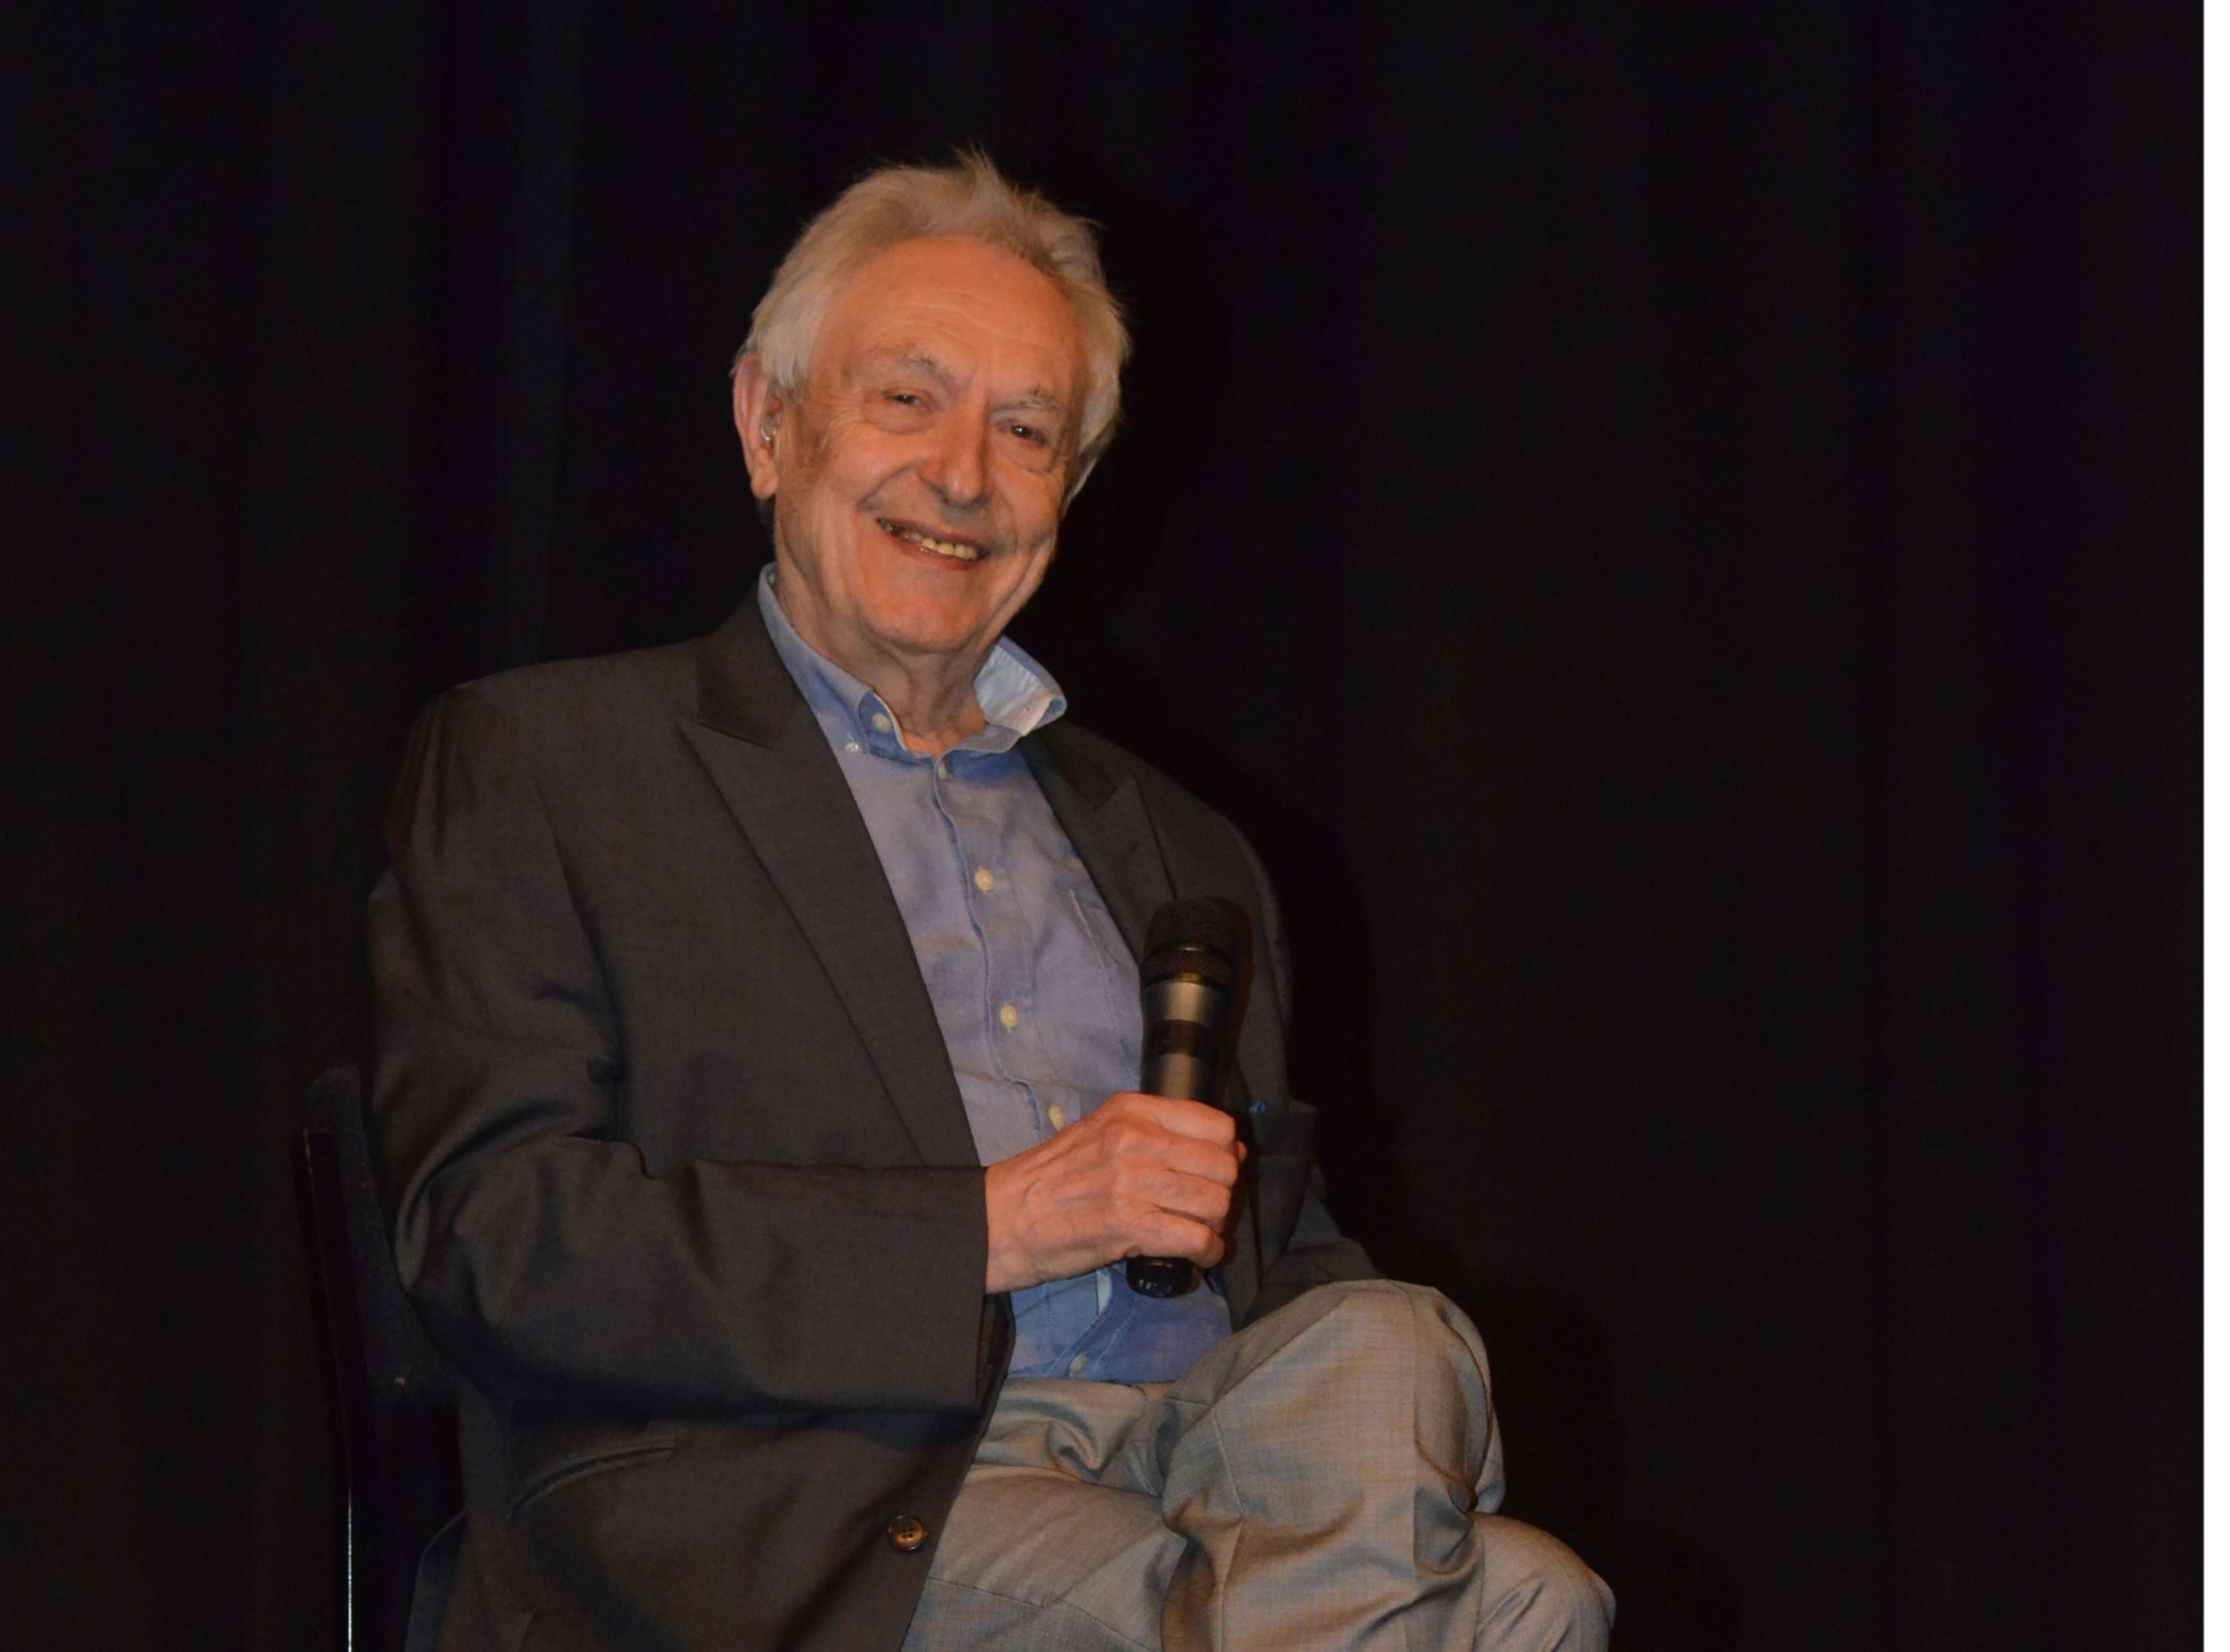 World famous obstetrician Michel Odent  speaks at the Lochgelly Centre.